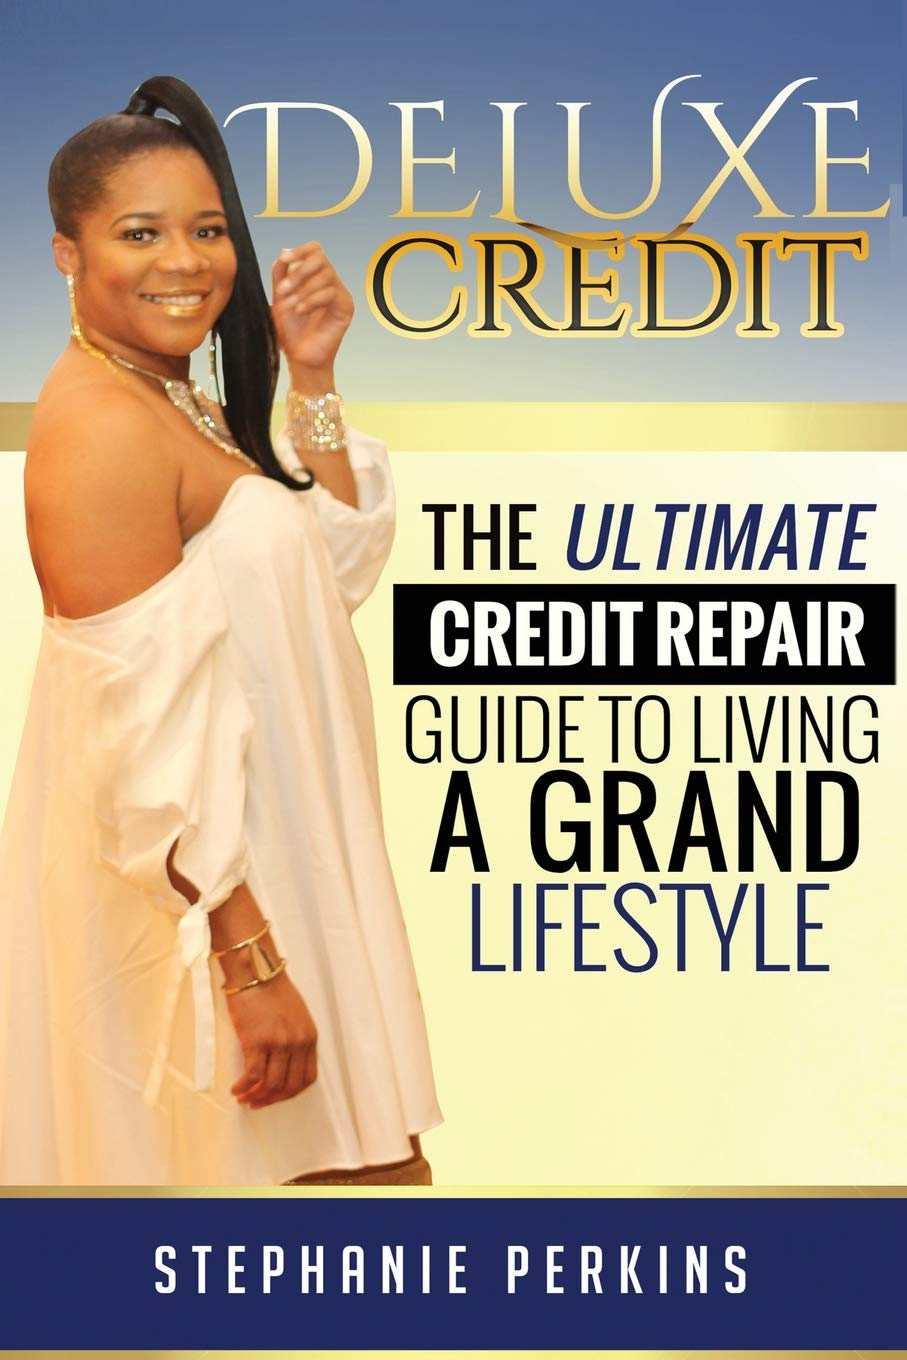 Deluxe Credit: The Ultimate Credit Repair Guide to Living a Grand Lifestyle